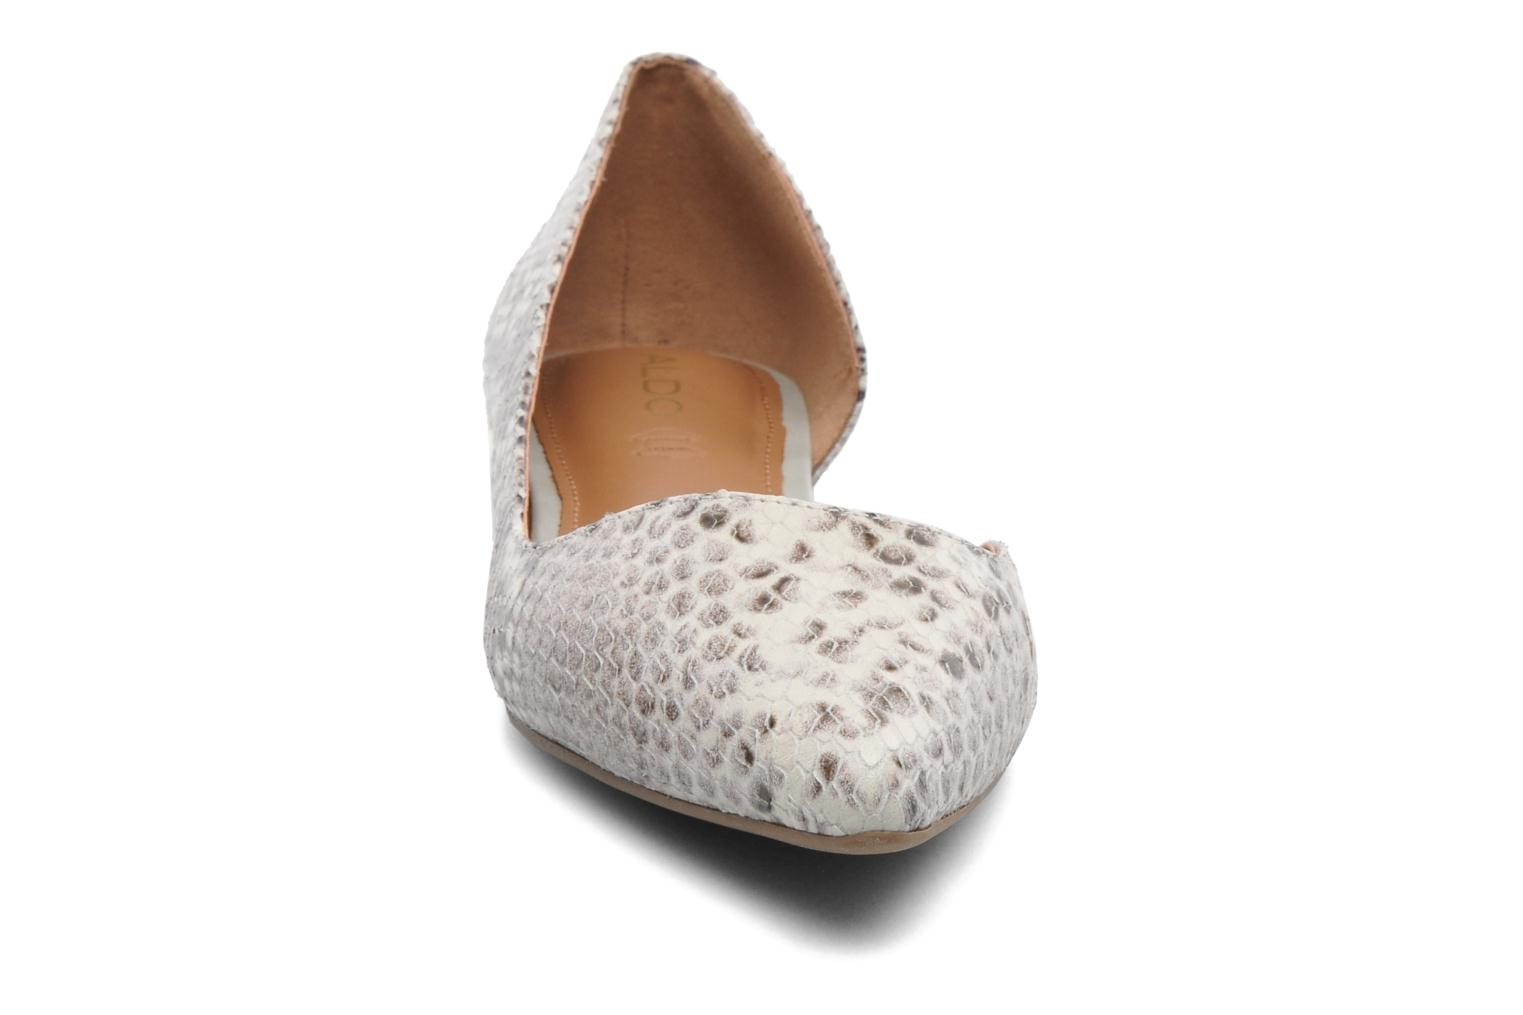 Ballerina's Aldo Dealia Beige model